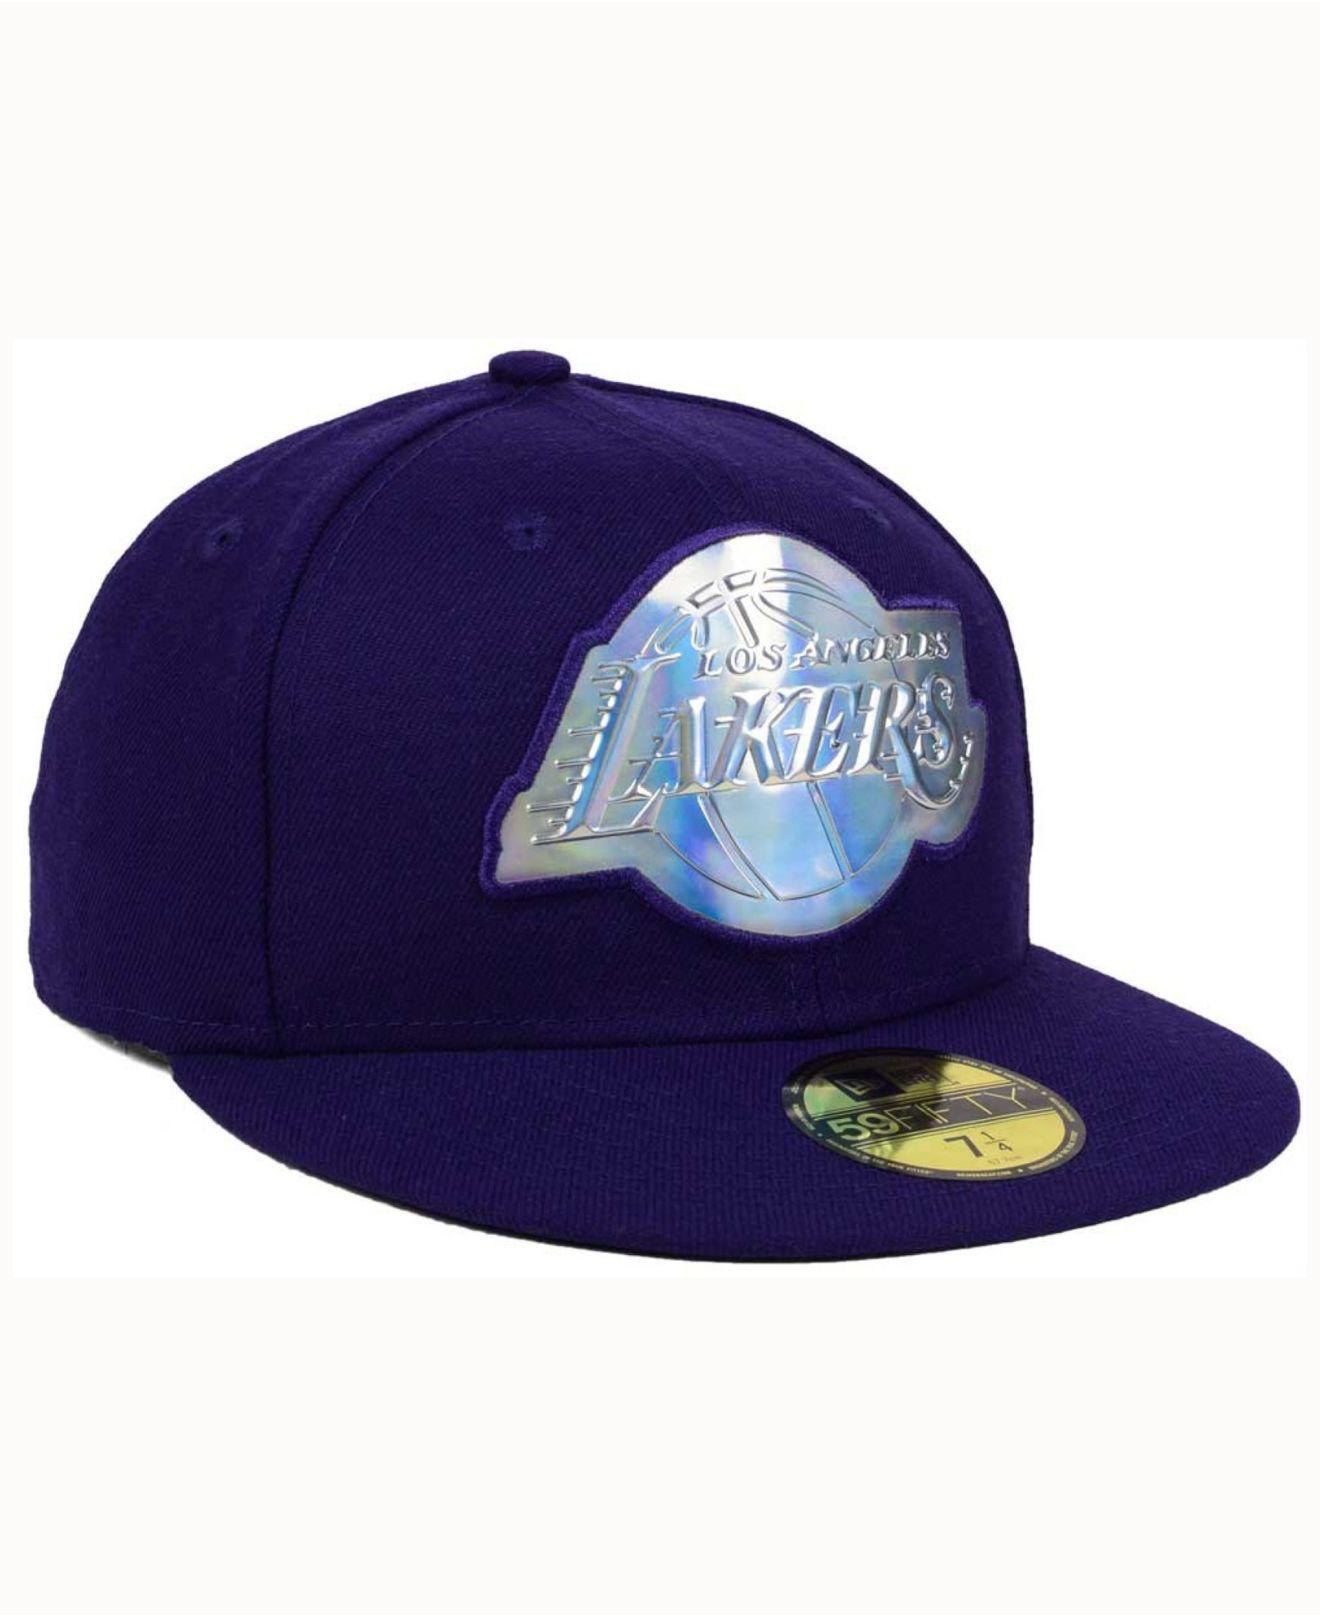 c99777b97 ... closeout lyst ktz los angeles lakers iridescent 59fifty cap in purple  for men 63c22 7756a